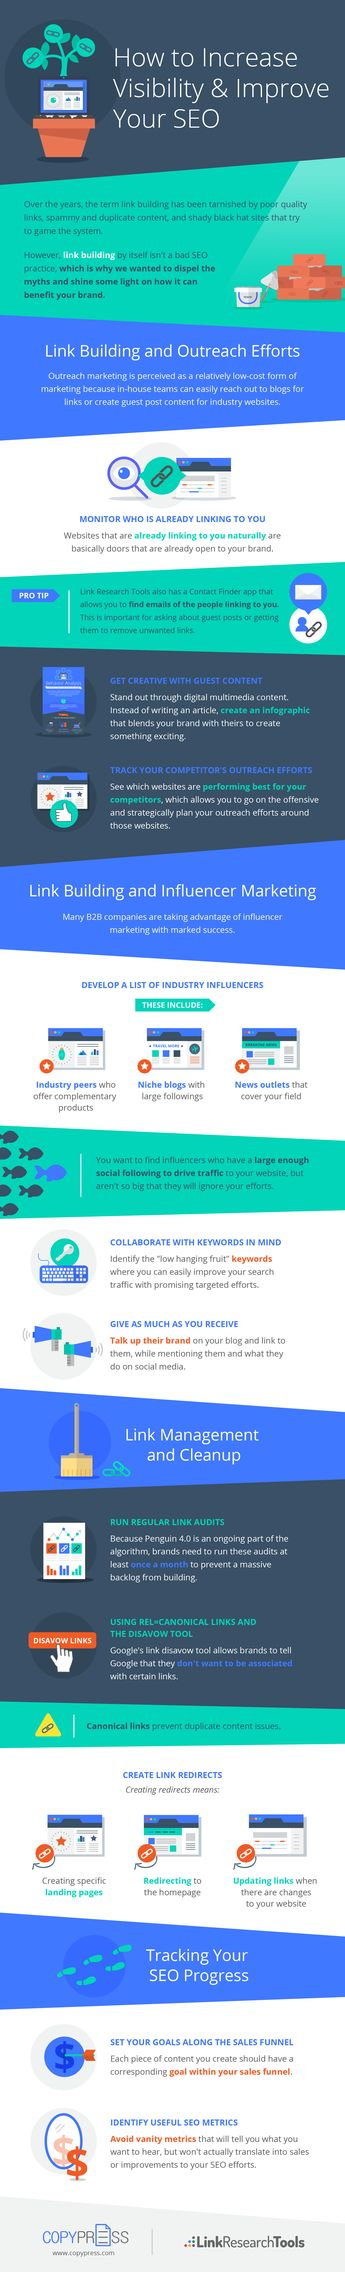 How to Improve Visibility and SEO [Infographic] | Social Media Today